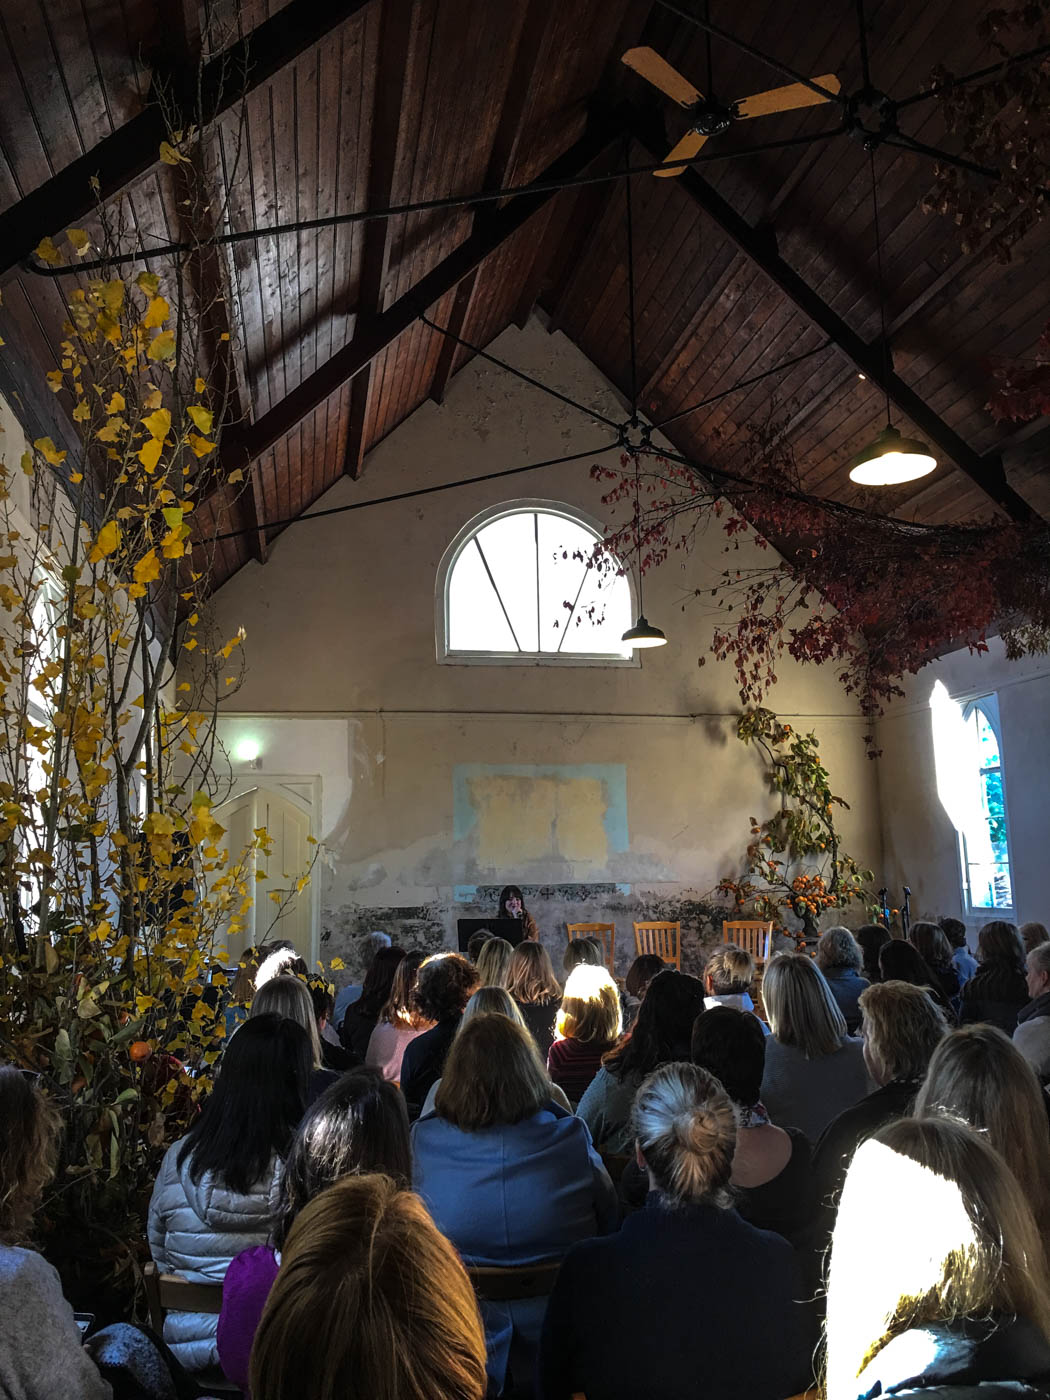 Inside the convent, workshop attendees